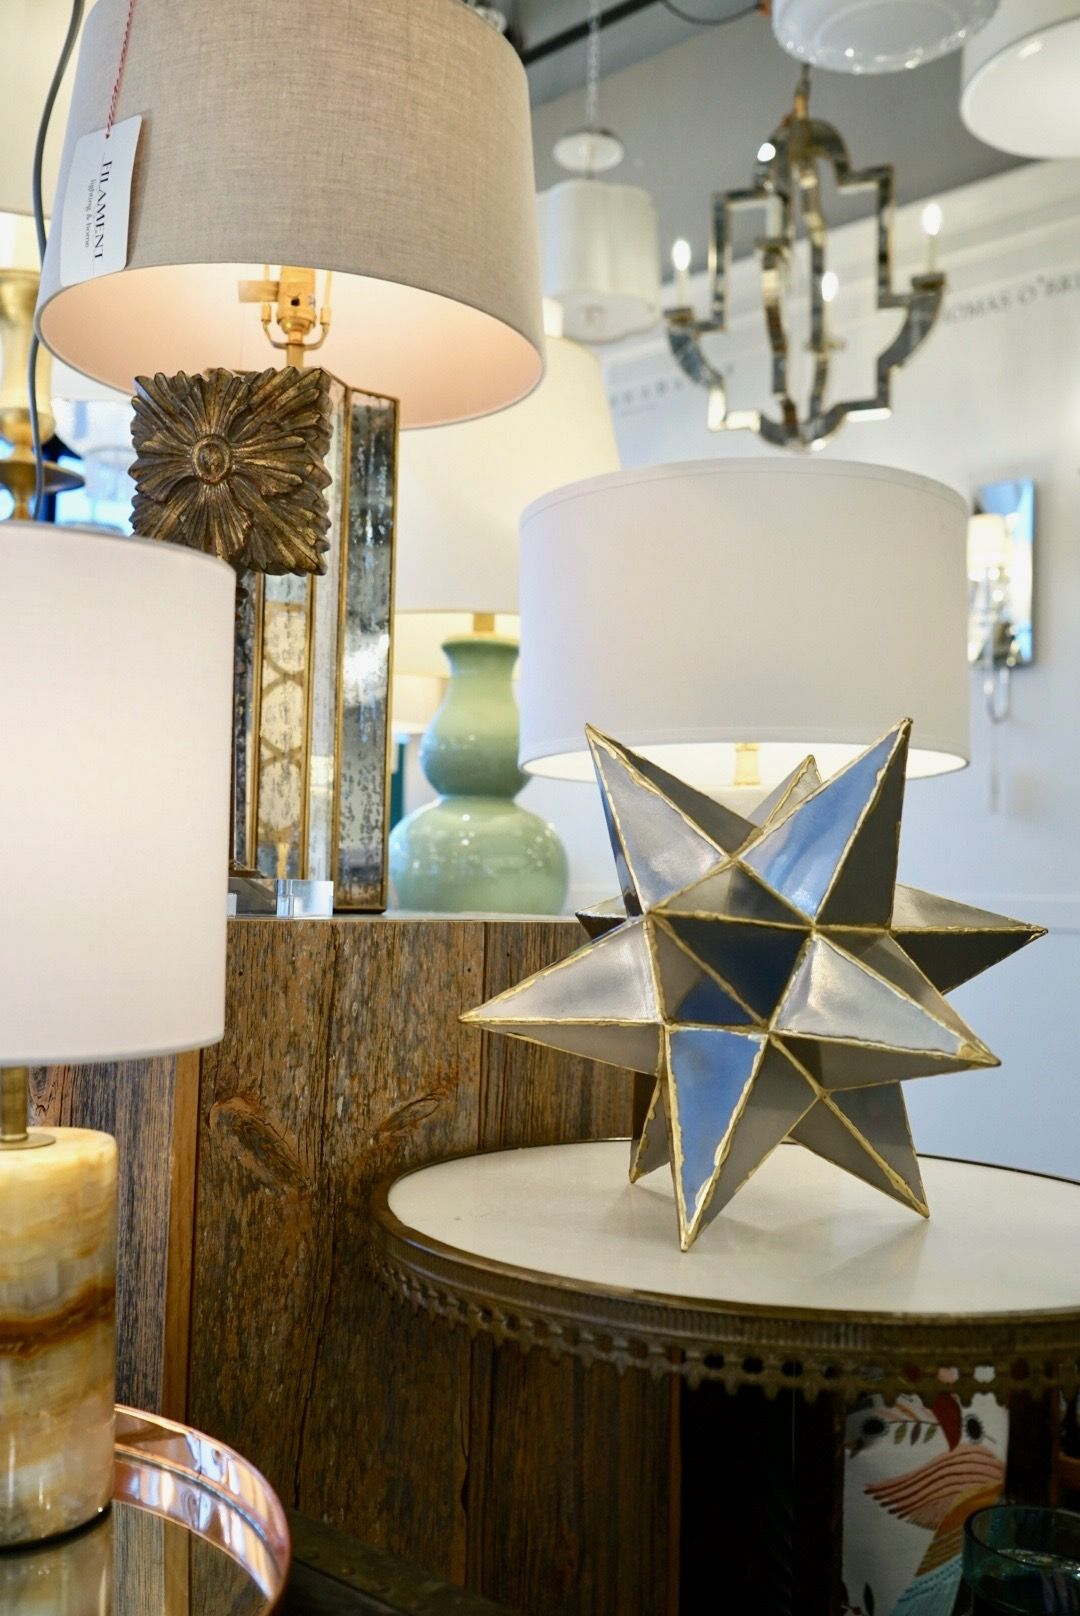 Interior decorating accessories by filament lighting merry and bright